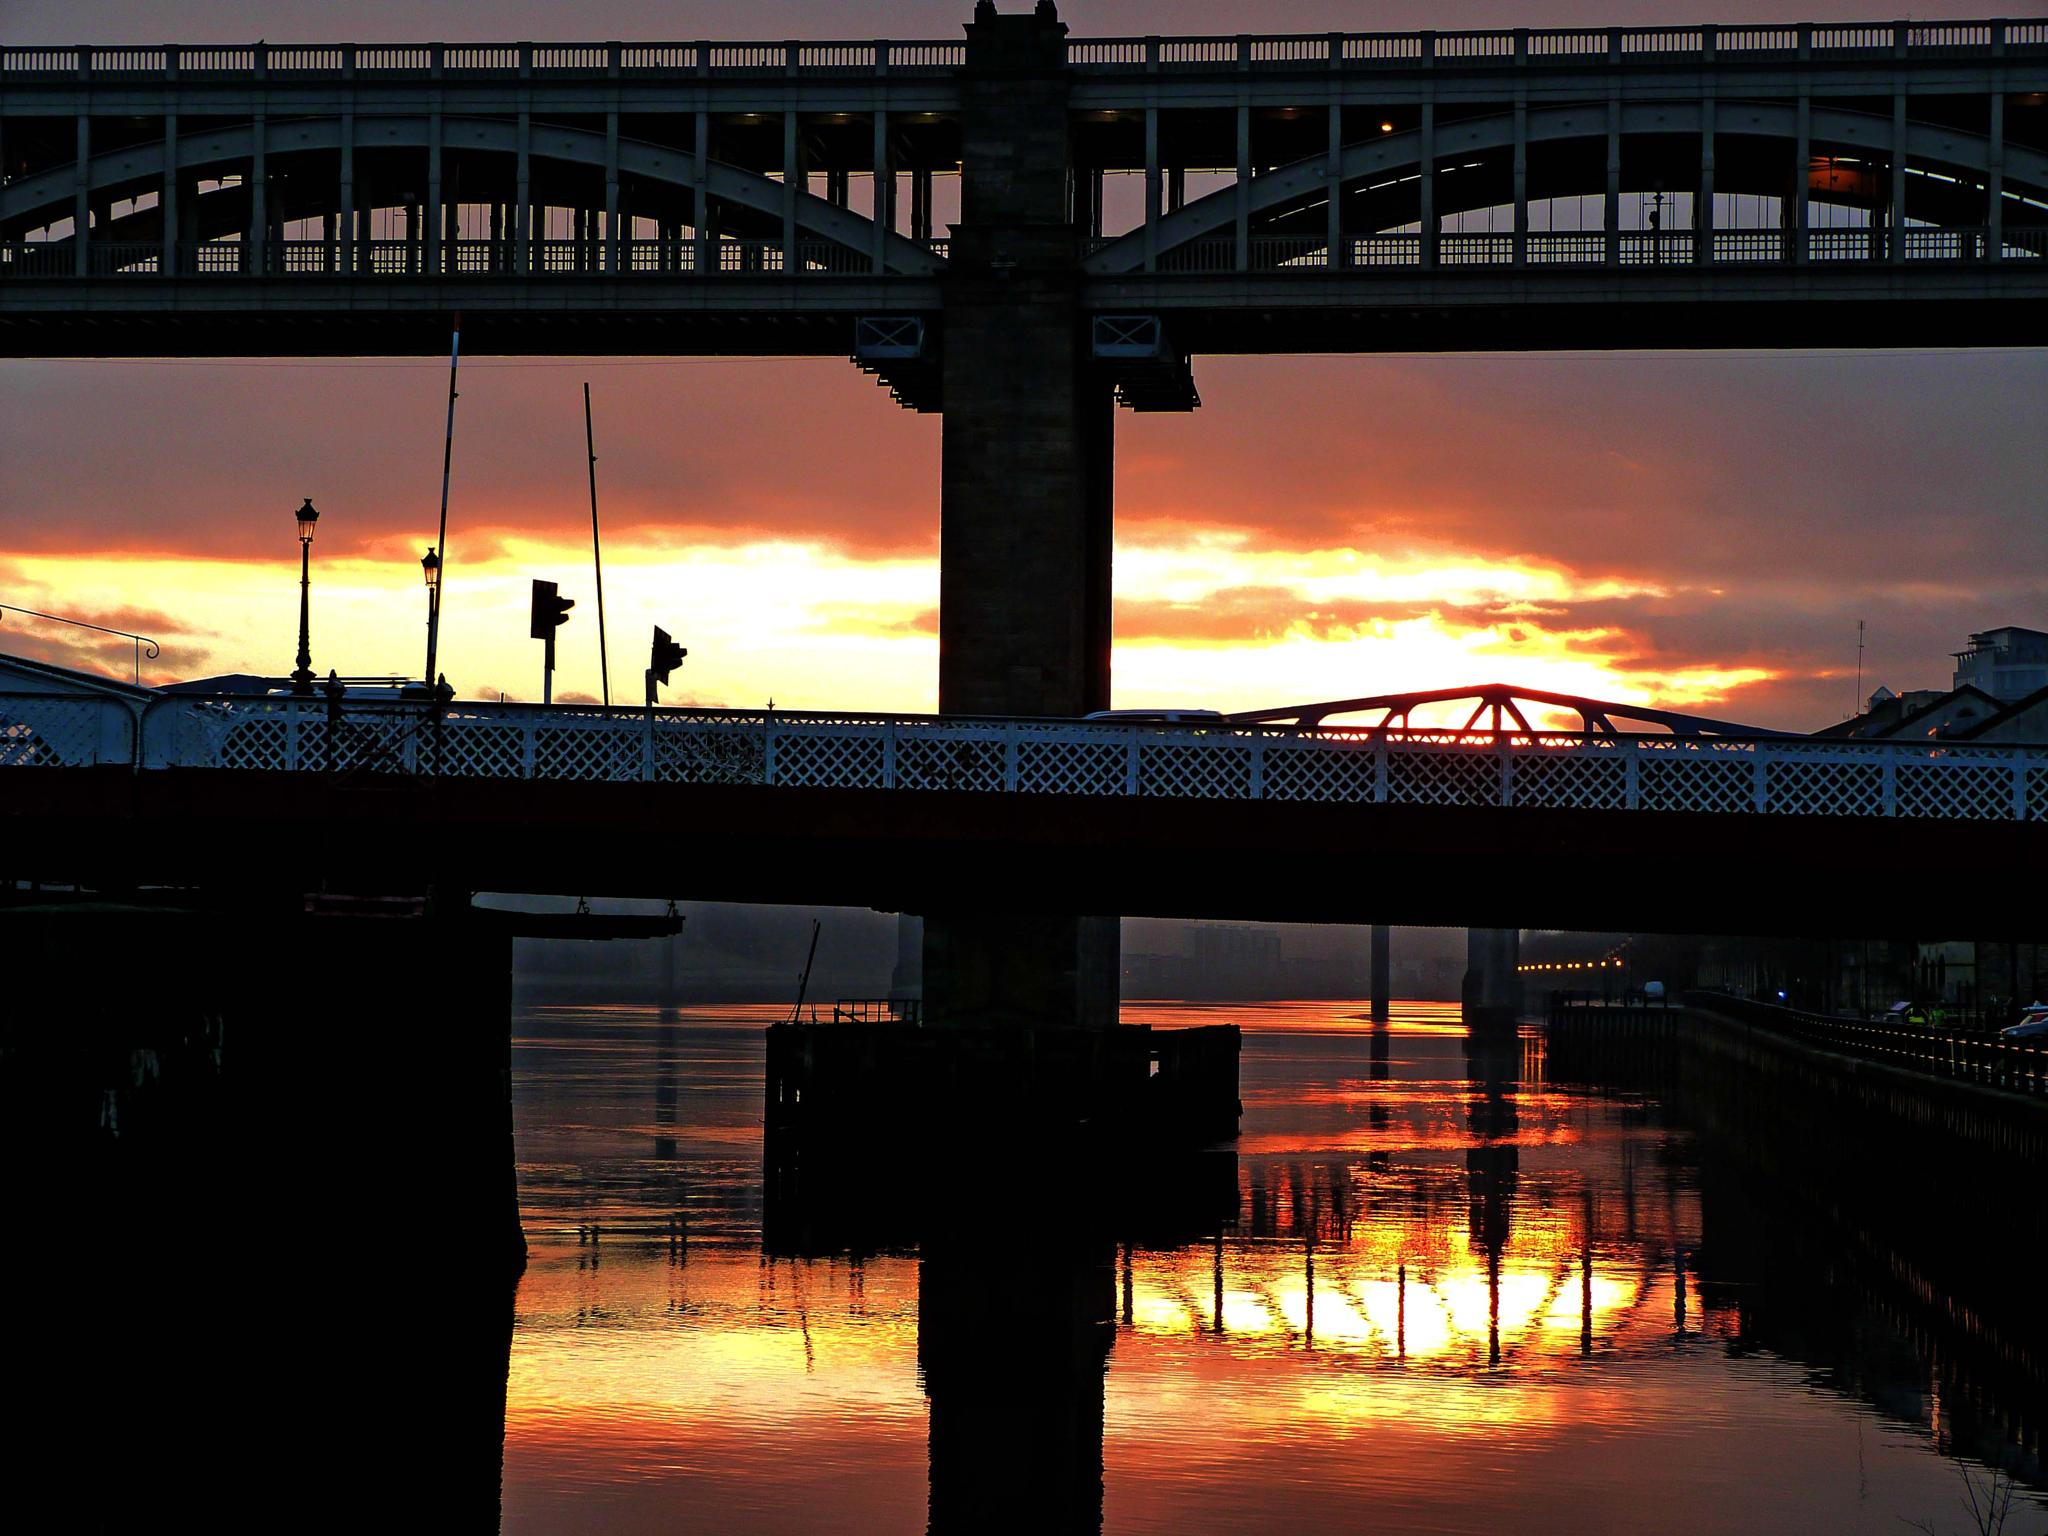 Sunset on the River Tyne Newcastle by Darren Turner